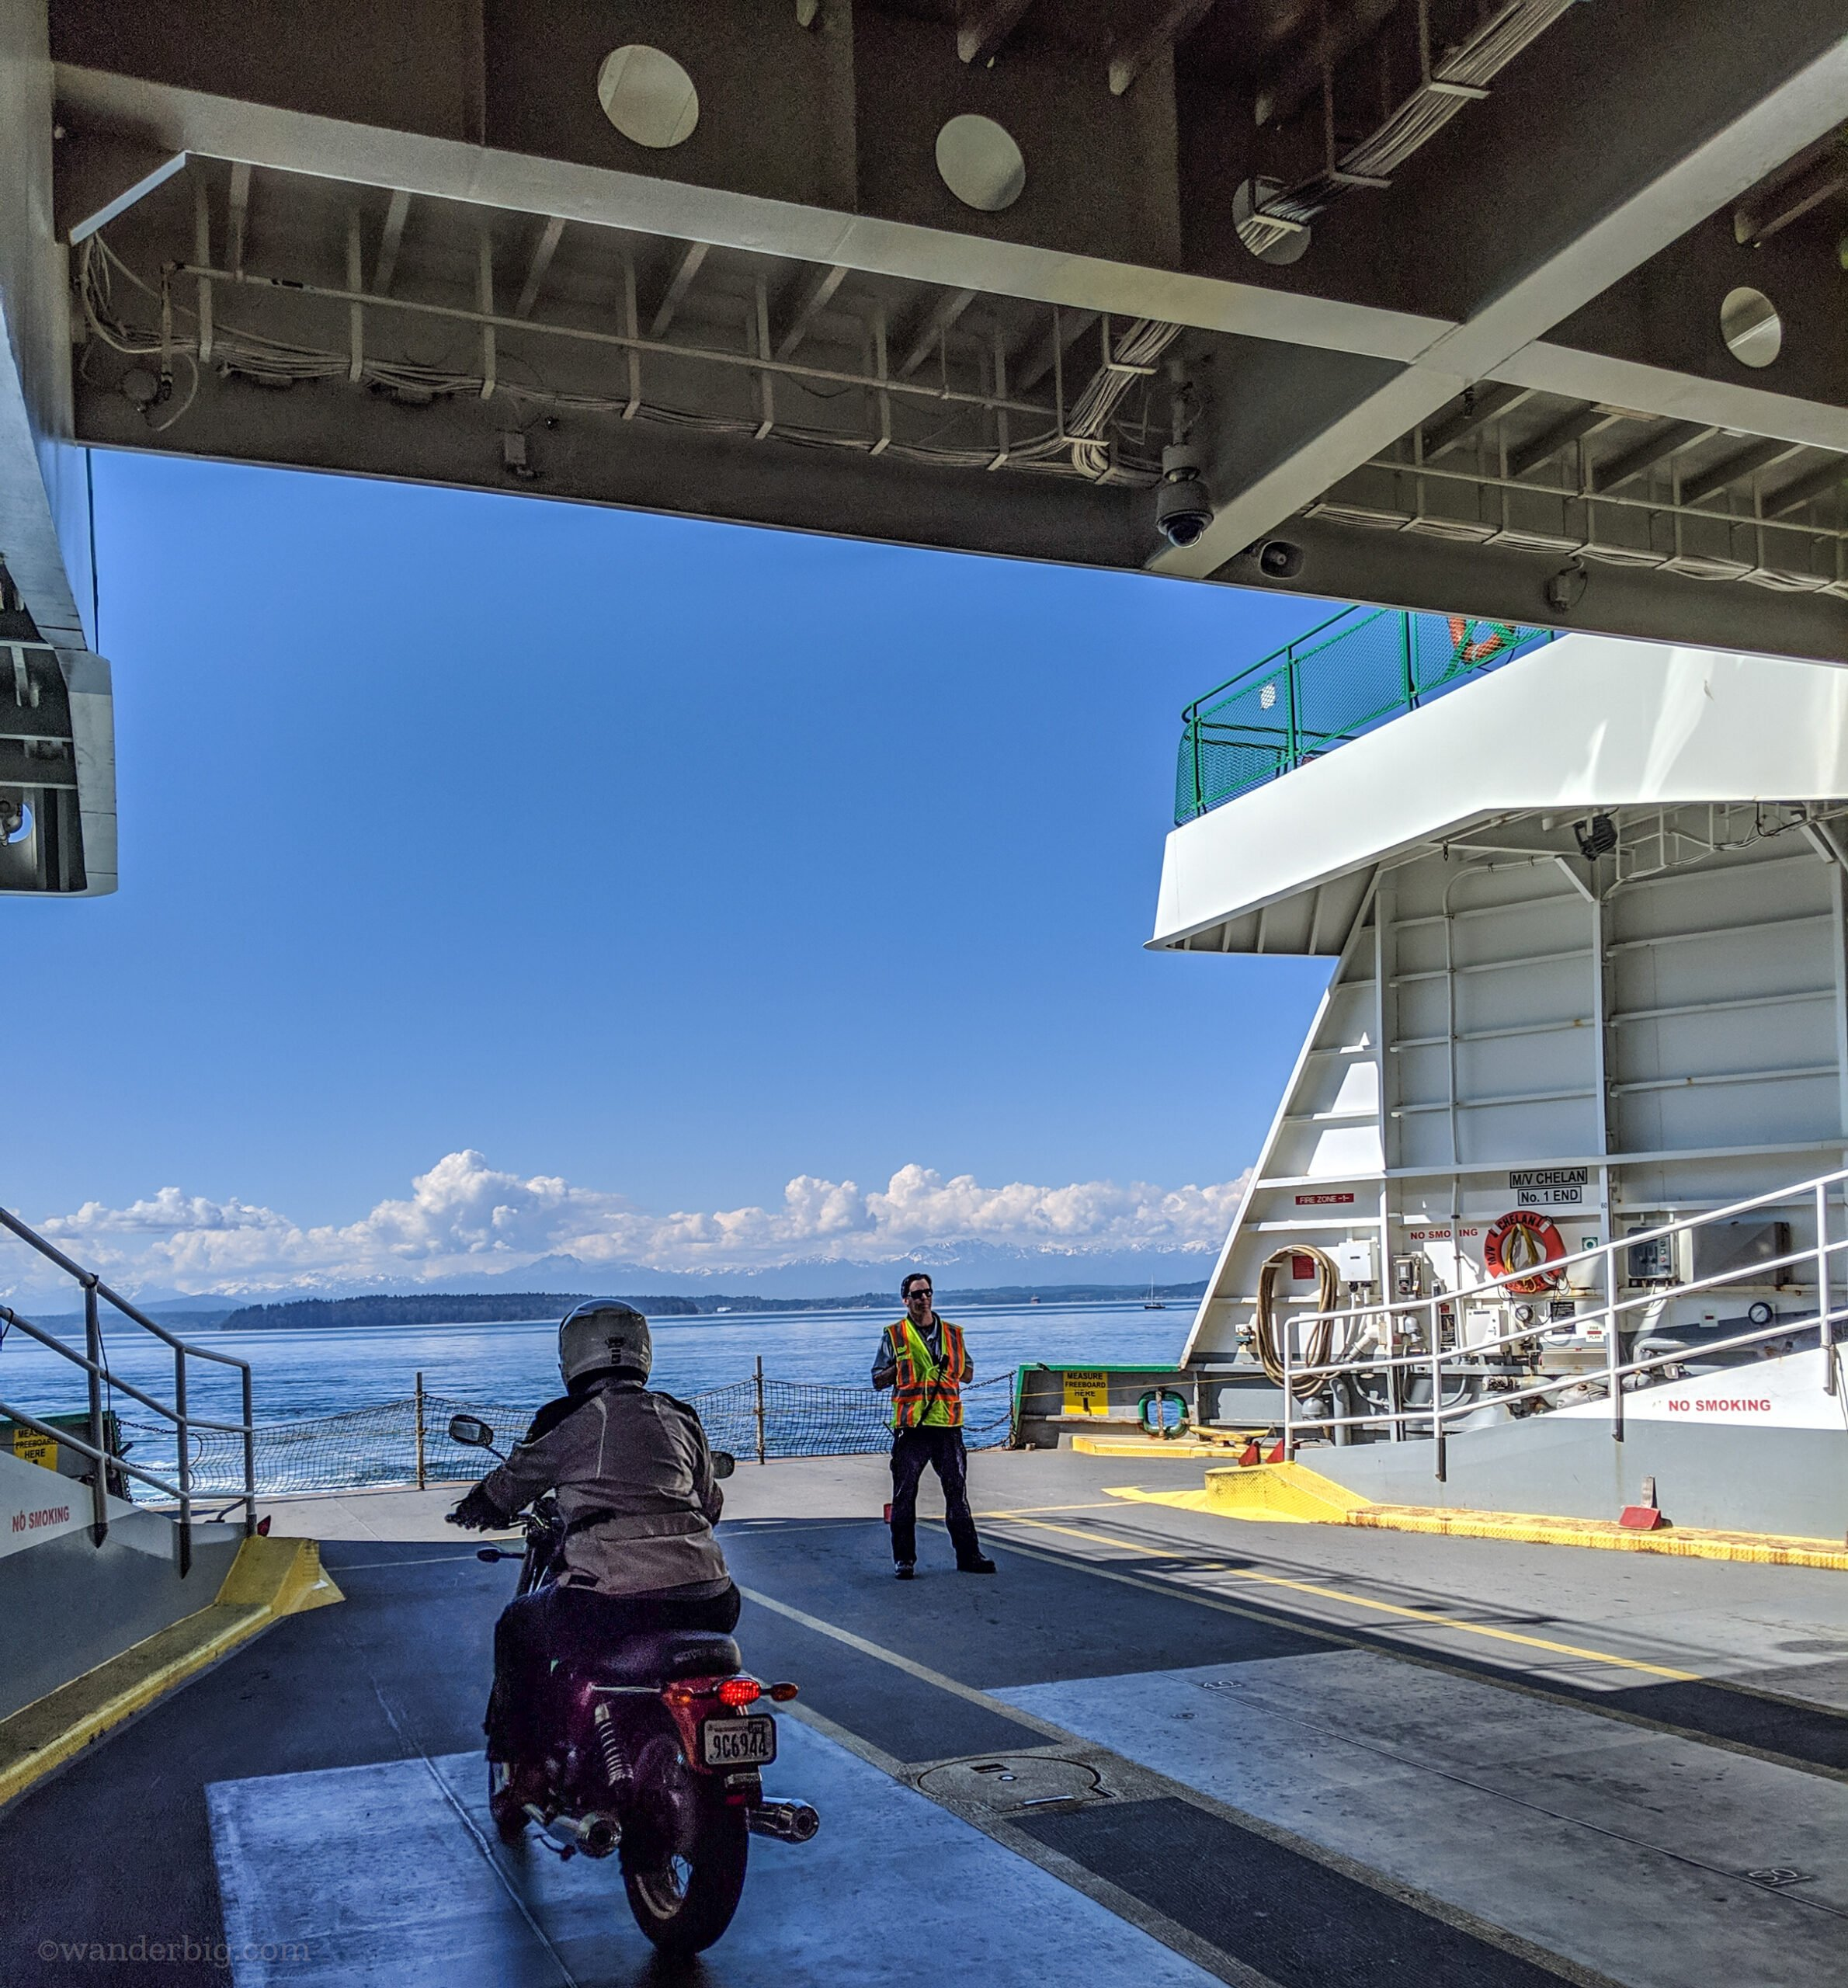 A motorcycle rider at the front of a washington state ferry.